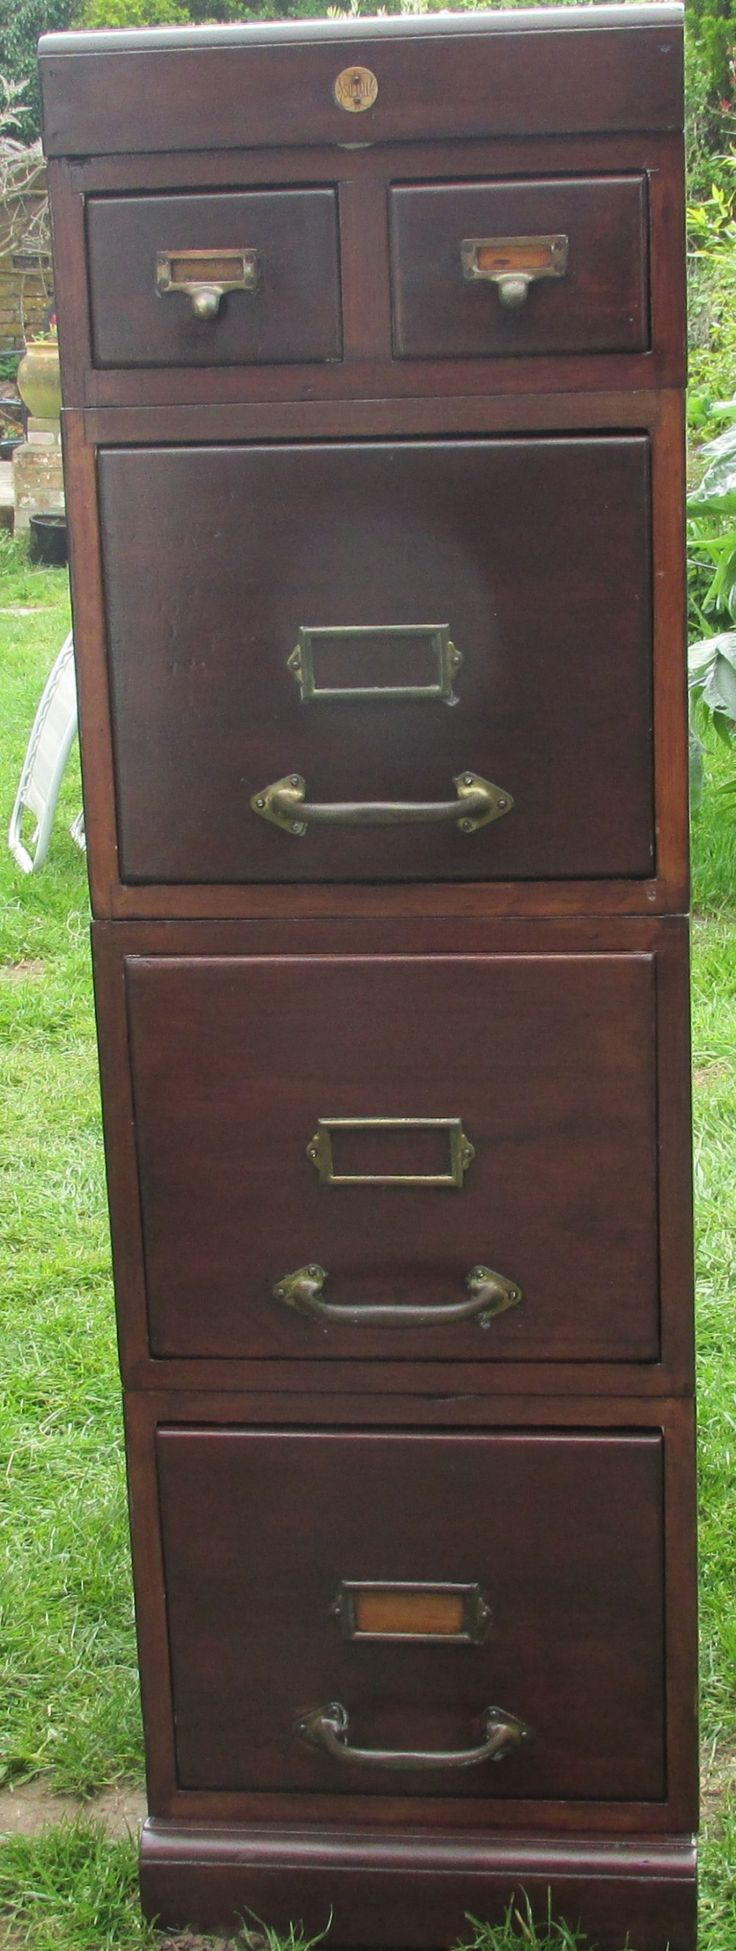 LATE VICTORIAN FILING CABINET